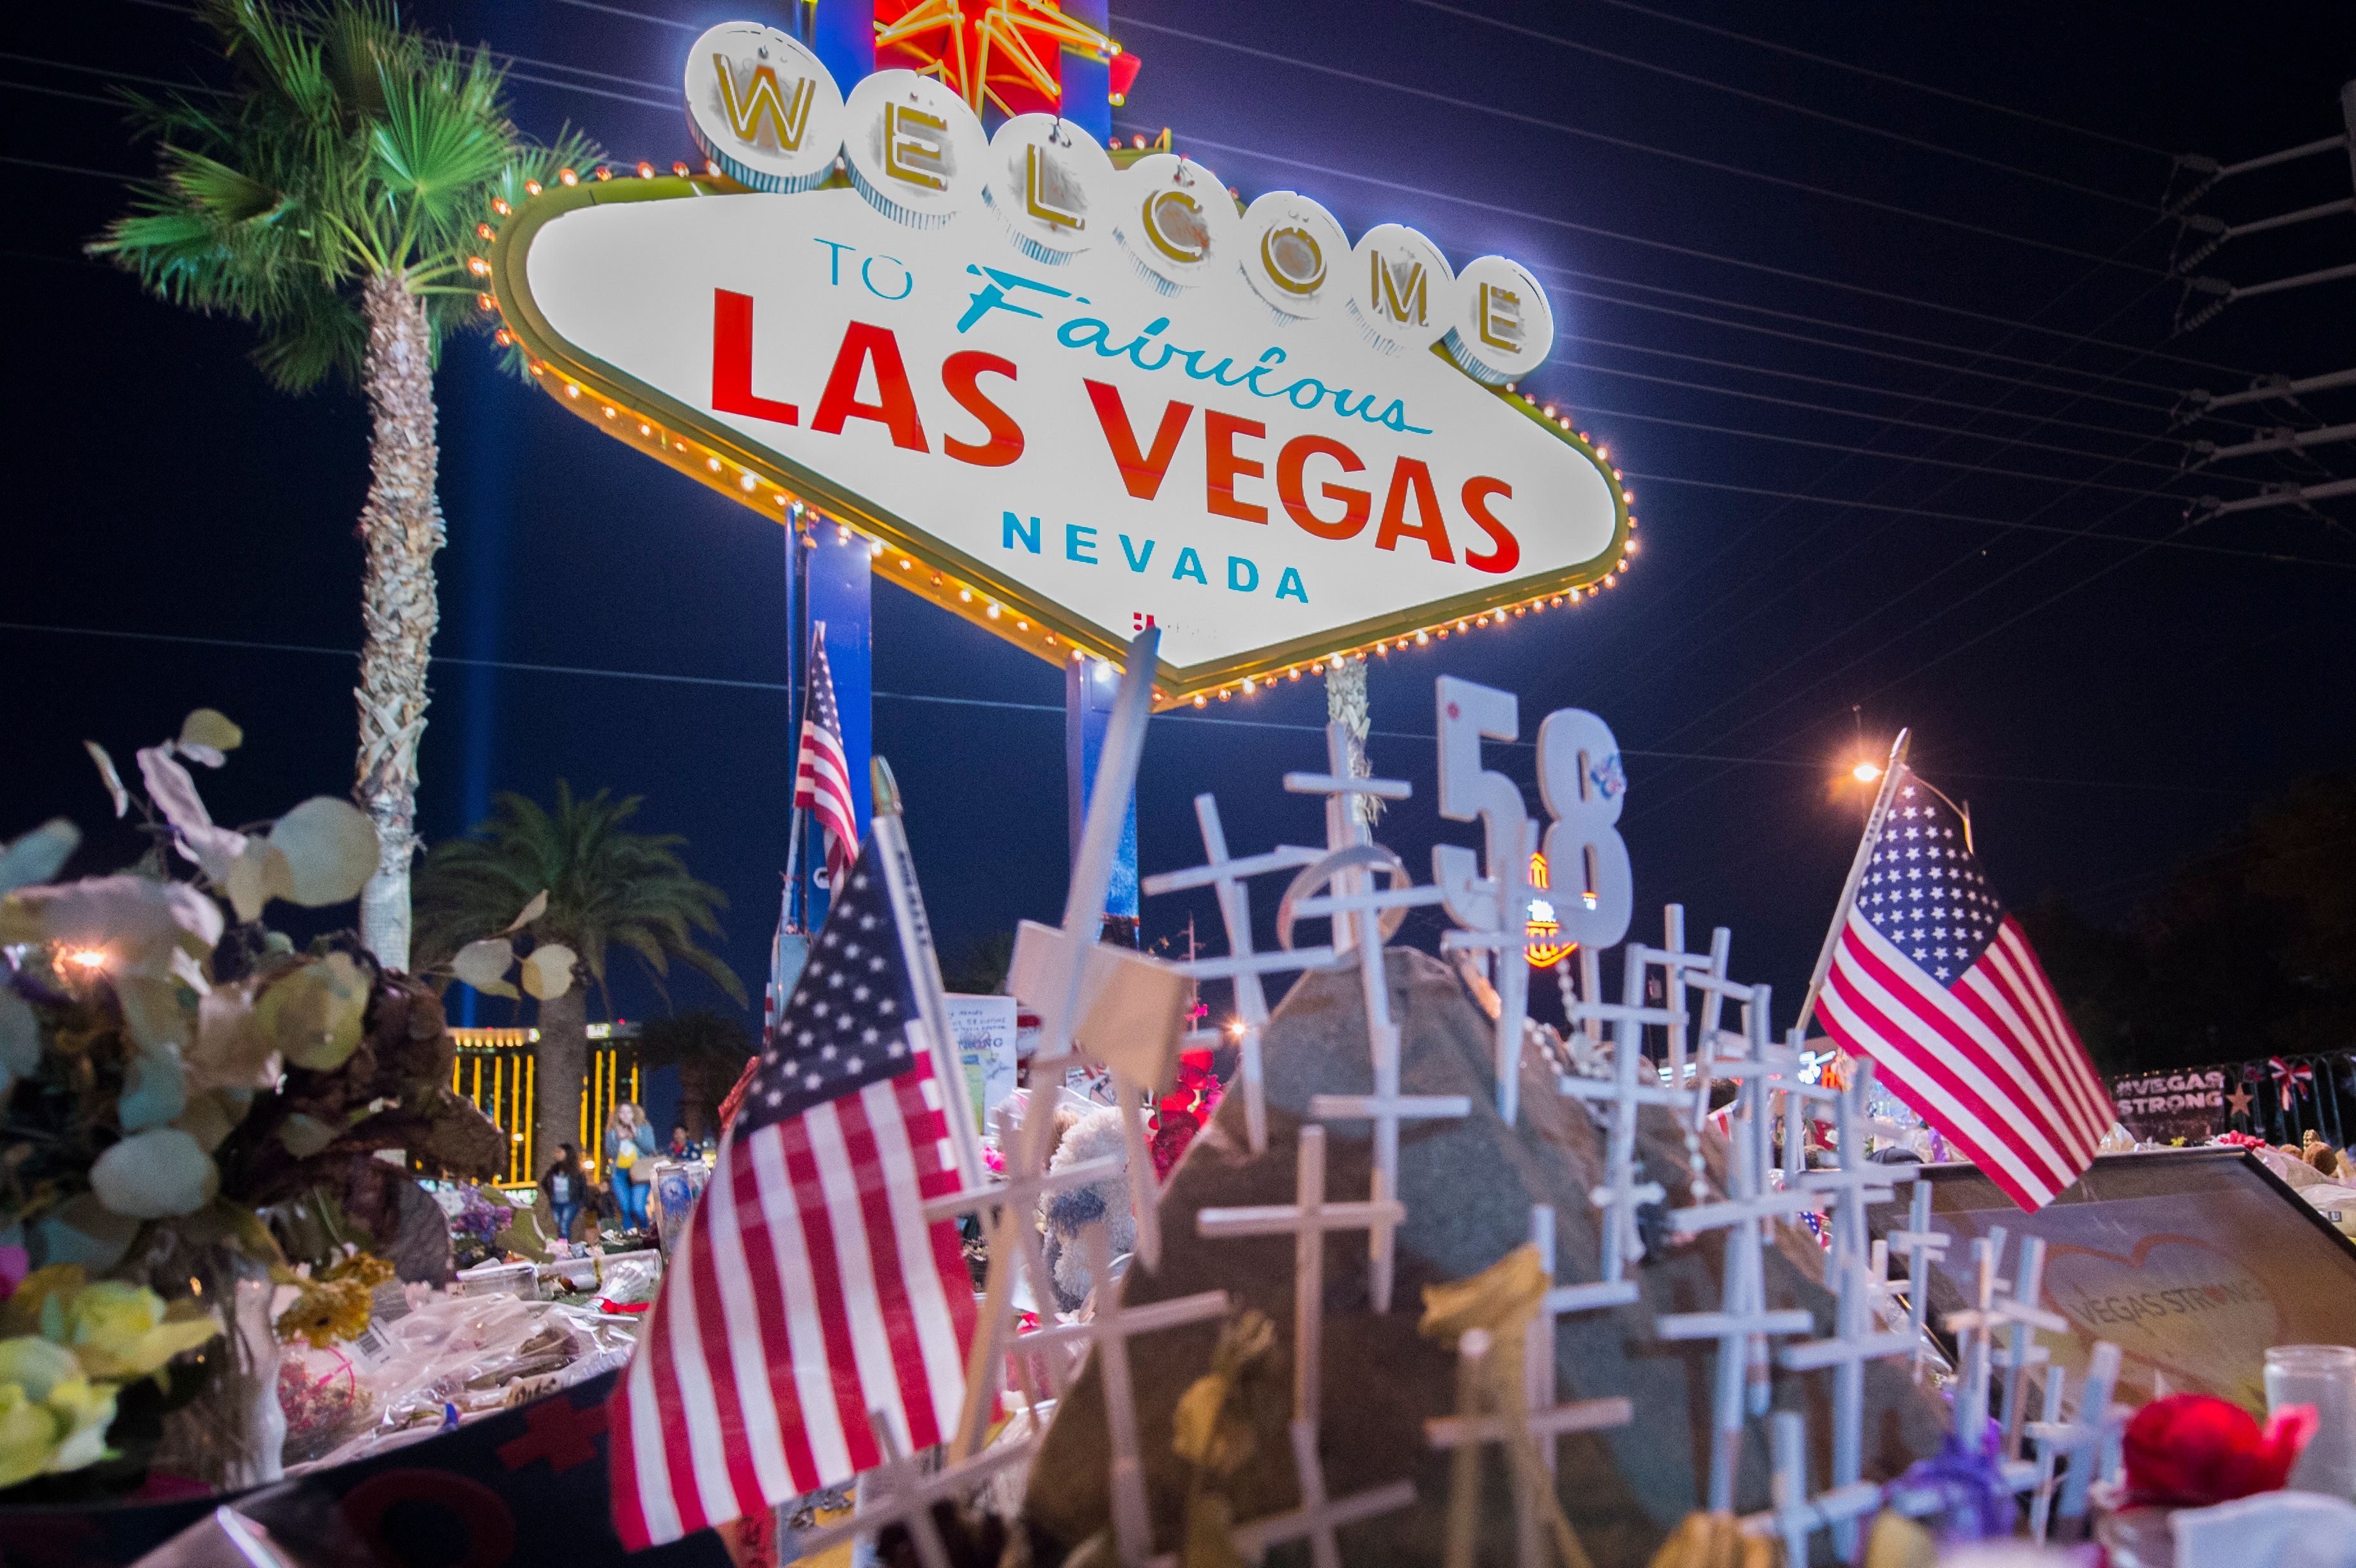 The area near The Fabulous Las Vegas Sign has become the memorial for the victims after the mass shooting in Las Vegas, Nevada, that took 58 lives, October 28, 2017. On the night of October 1, 2017, gunman Stephen Paddock opened fire from the 32nd floor of Mandalay Bay Resort and Casino on a crowd of concertgoers at the Route 91 Harvest music festival on the Las Vegas Strip in Nevada, leaving 58 people dead and 546 injured. (Photo by Yichuan Cao/NurPhoto via Getty Images)